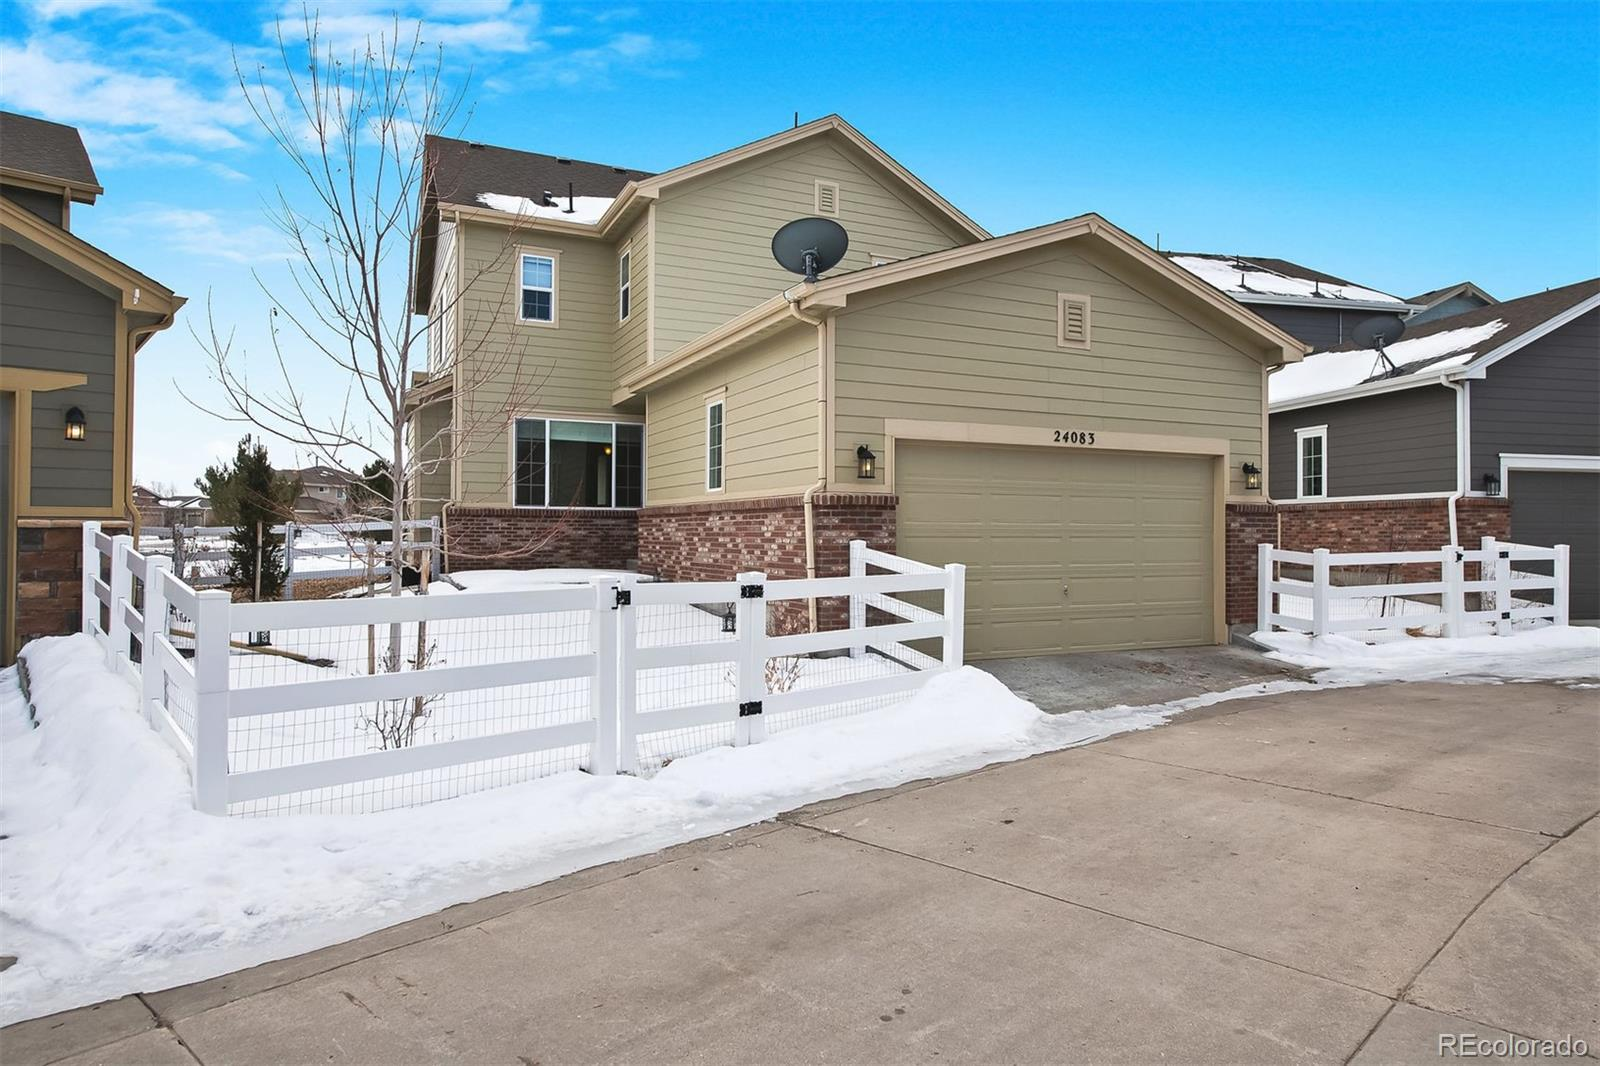 MLS# 9048750 - 29 - 24083 E Florida Avenue, Aurora, CO 80018